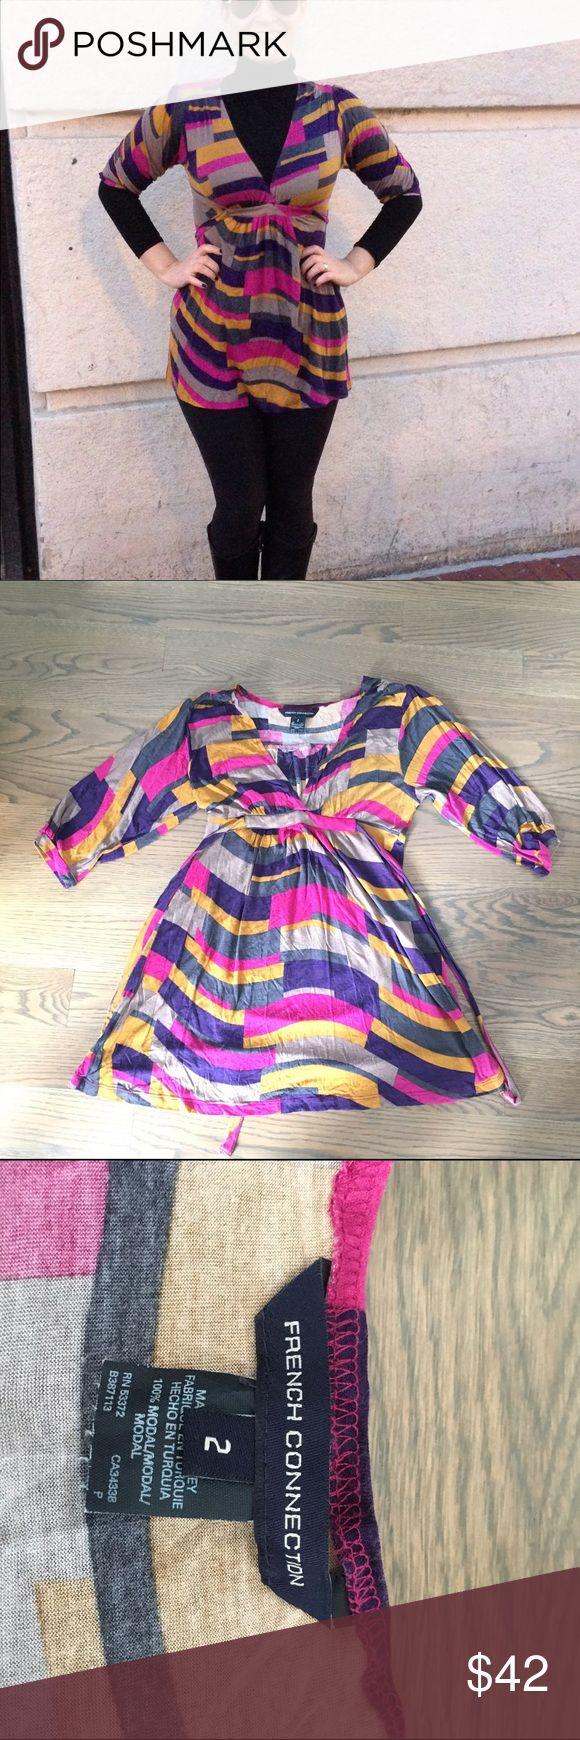 French Connection Dress French Connection Dress                                        - Excellent Condition                                                   - 100 modal                                                                   - Colorful and fun piece that pairs great with leggings                                                                           - Size 2 and no longer fits me or I would keep it            - Pet free and smoke free home 🏡 French Connection Dresses Mini